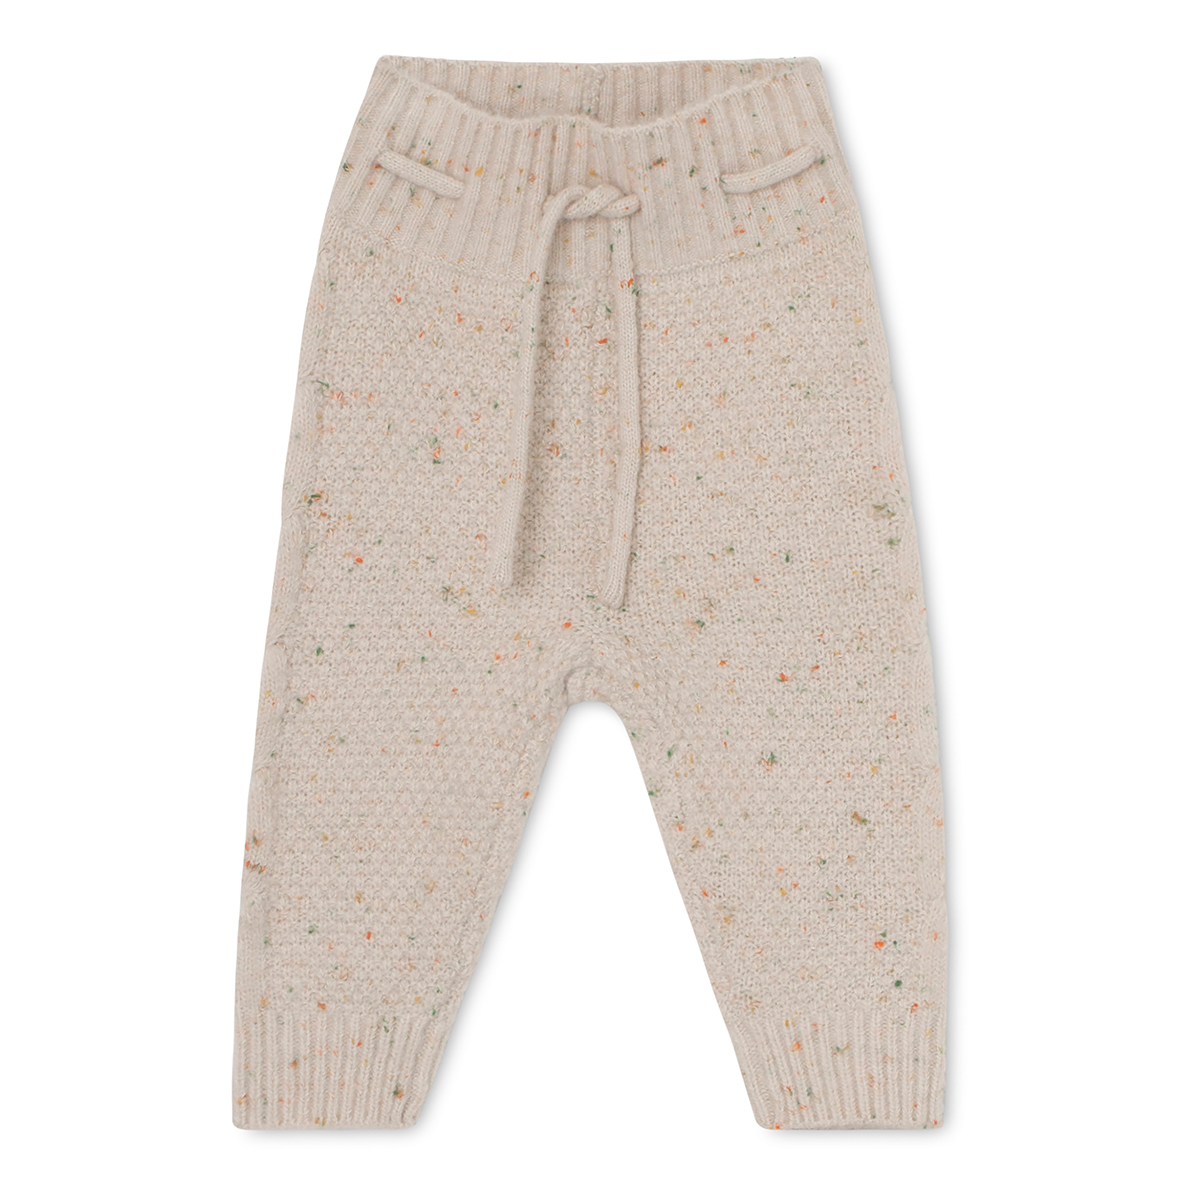 Mini A Ture Spence Pant in Sand